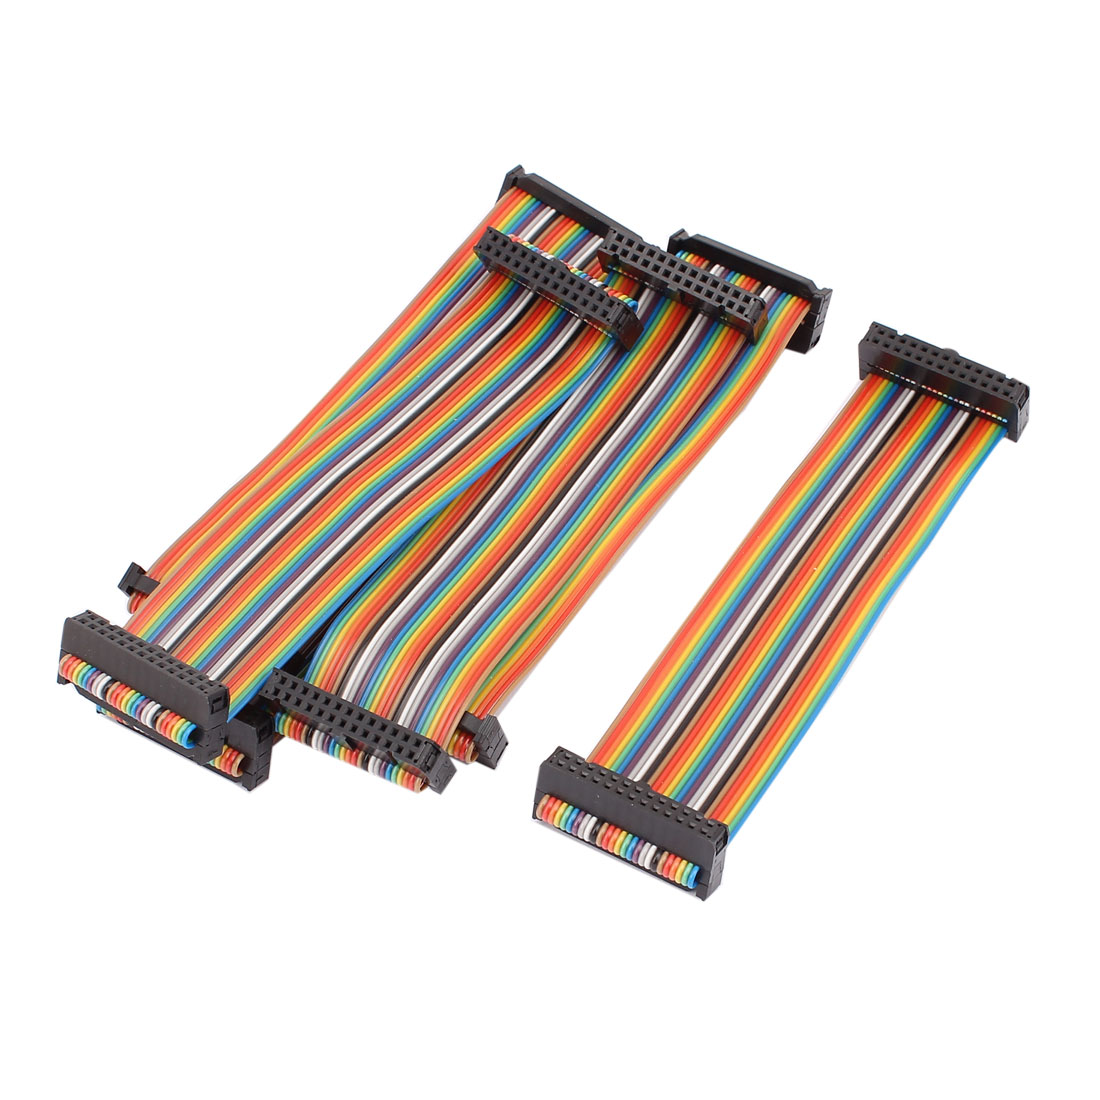 6PCS 2.54mm Pitch 26 Pin 26 Way F/F Rainbow IDC Flat Ribbon Cable Connector 15CM